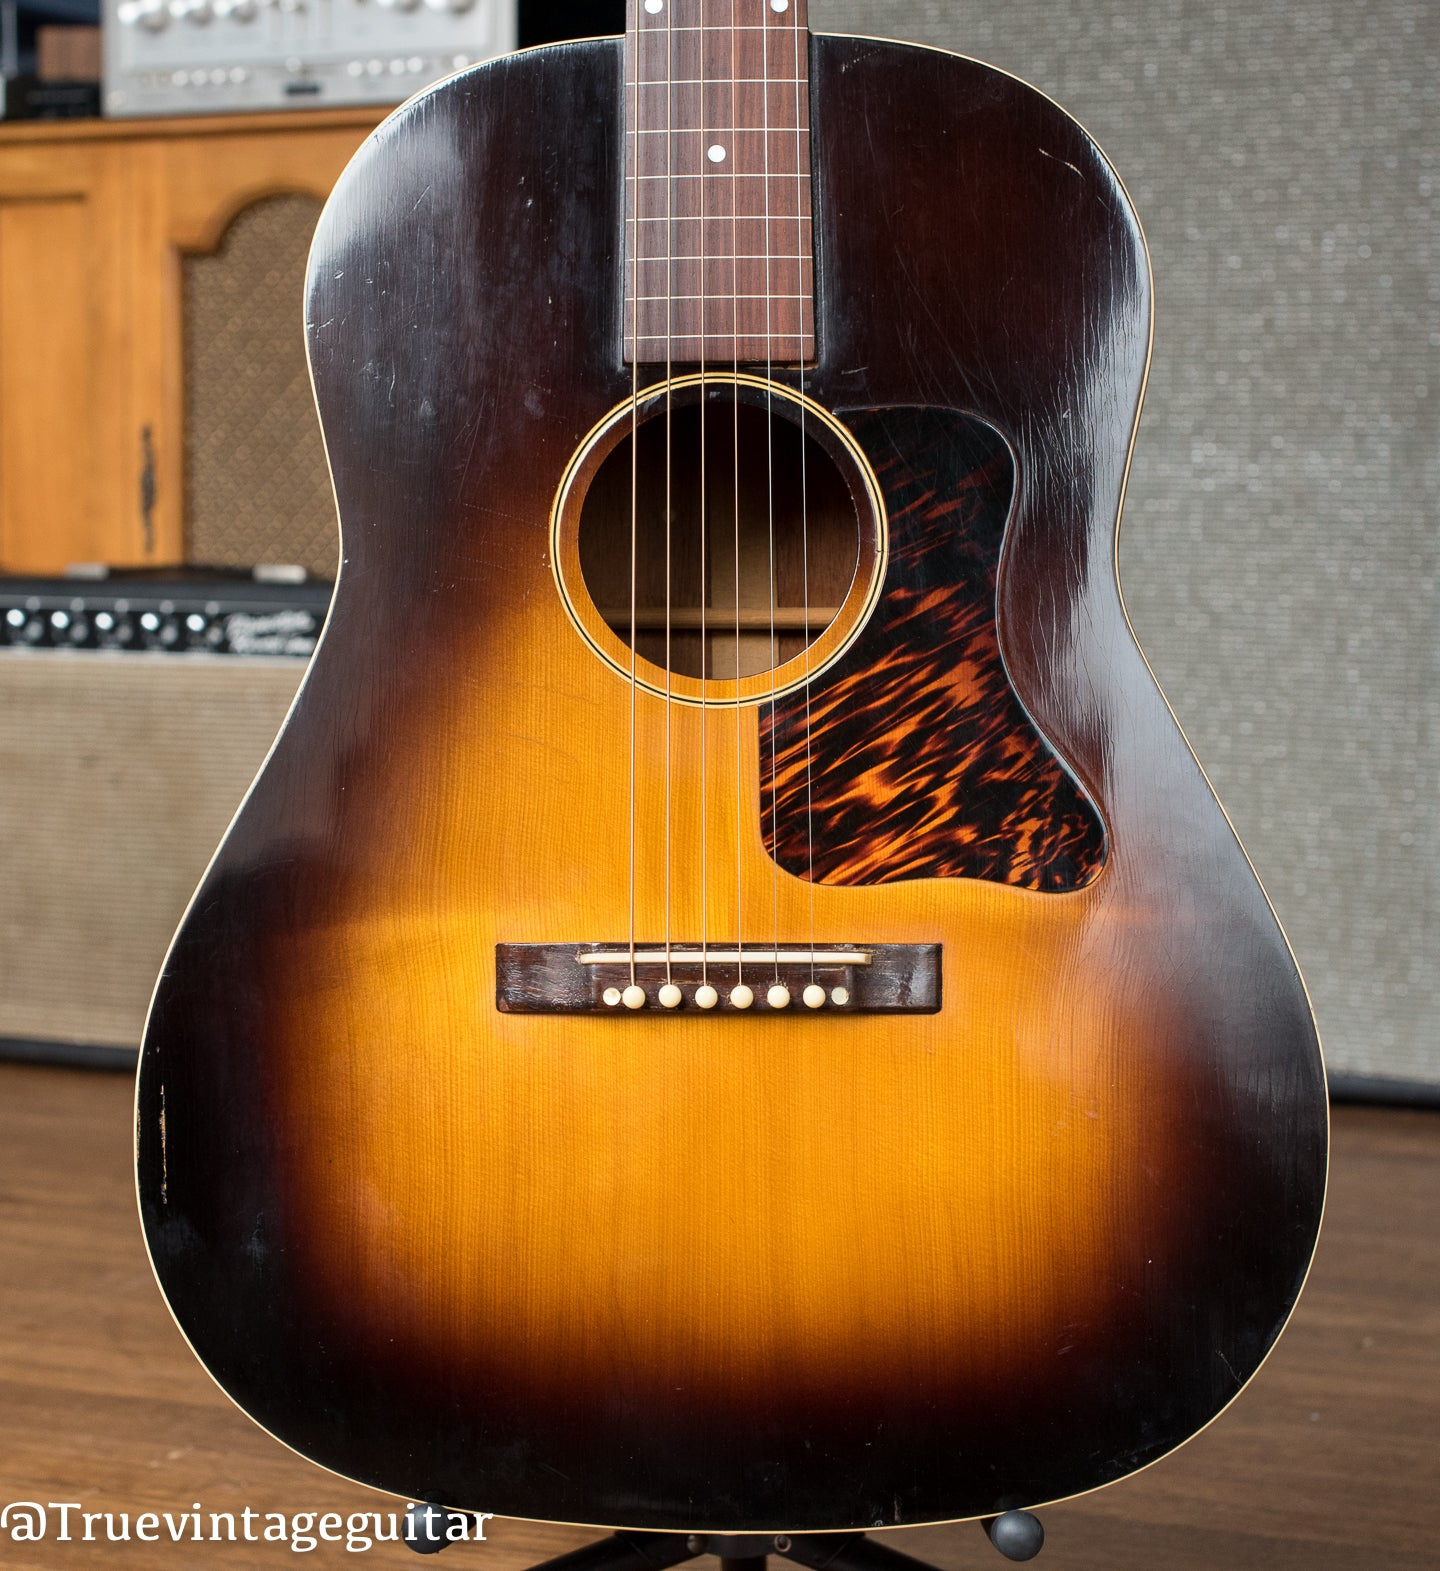 1937 Gibson Roy Smeck Stage Deluxe guitar